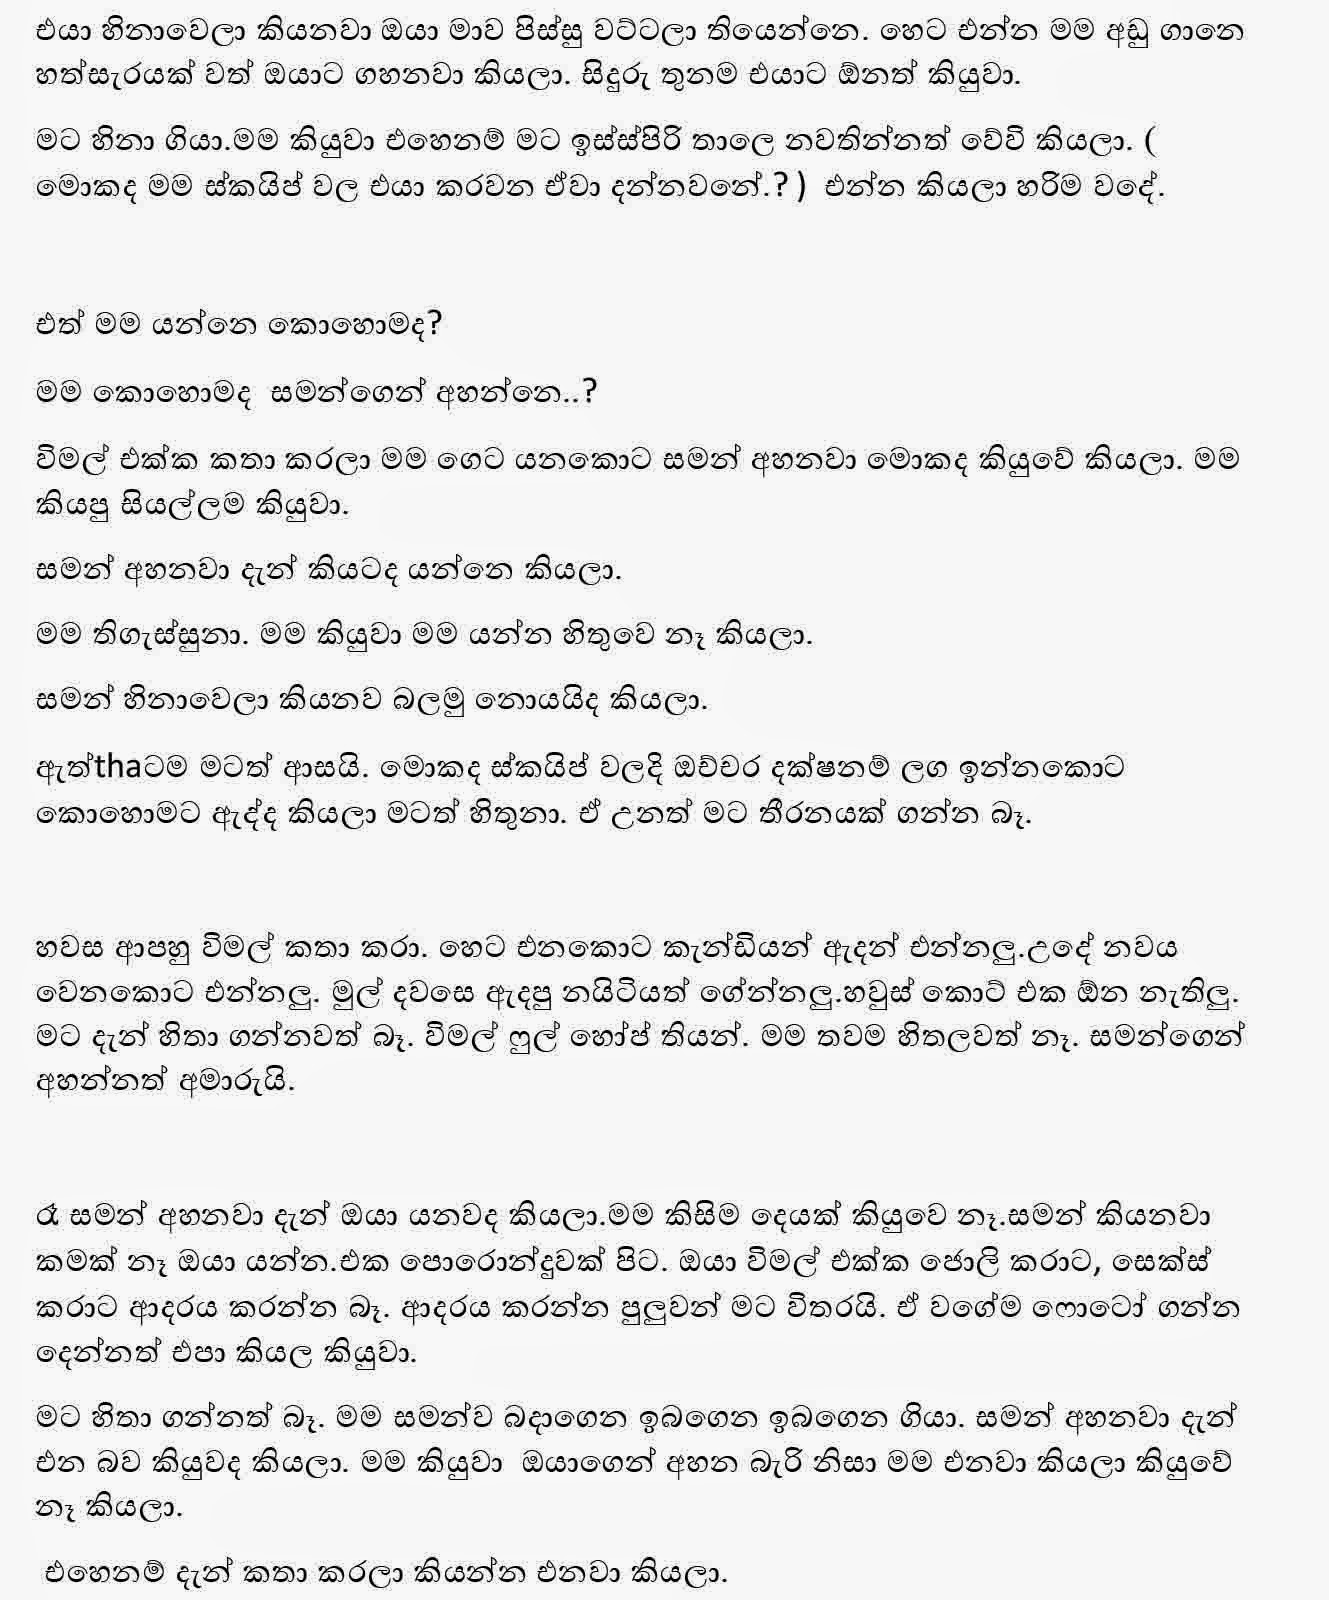 Detail information for ammai thaththai sinhala wal katha agcar party